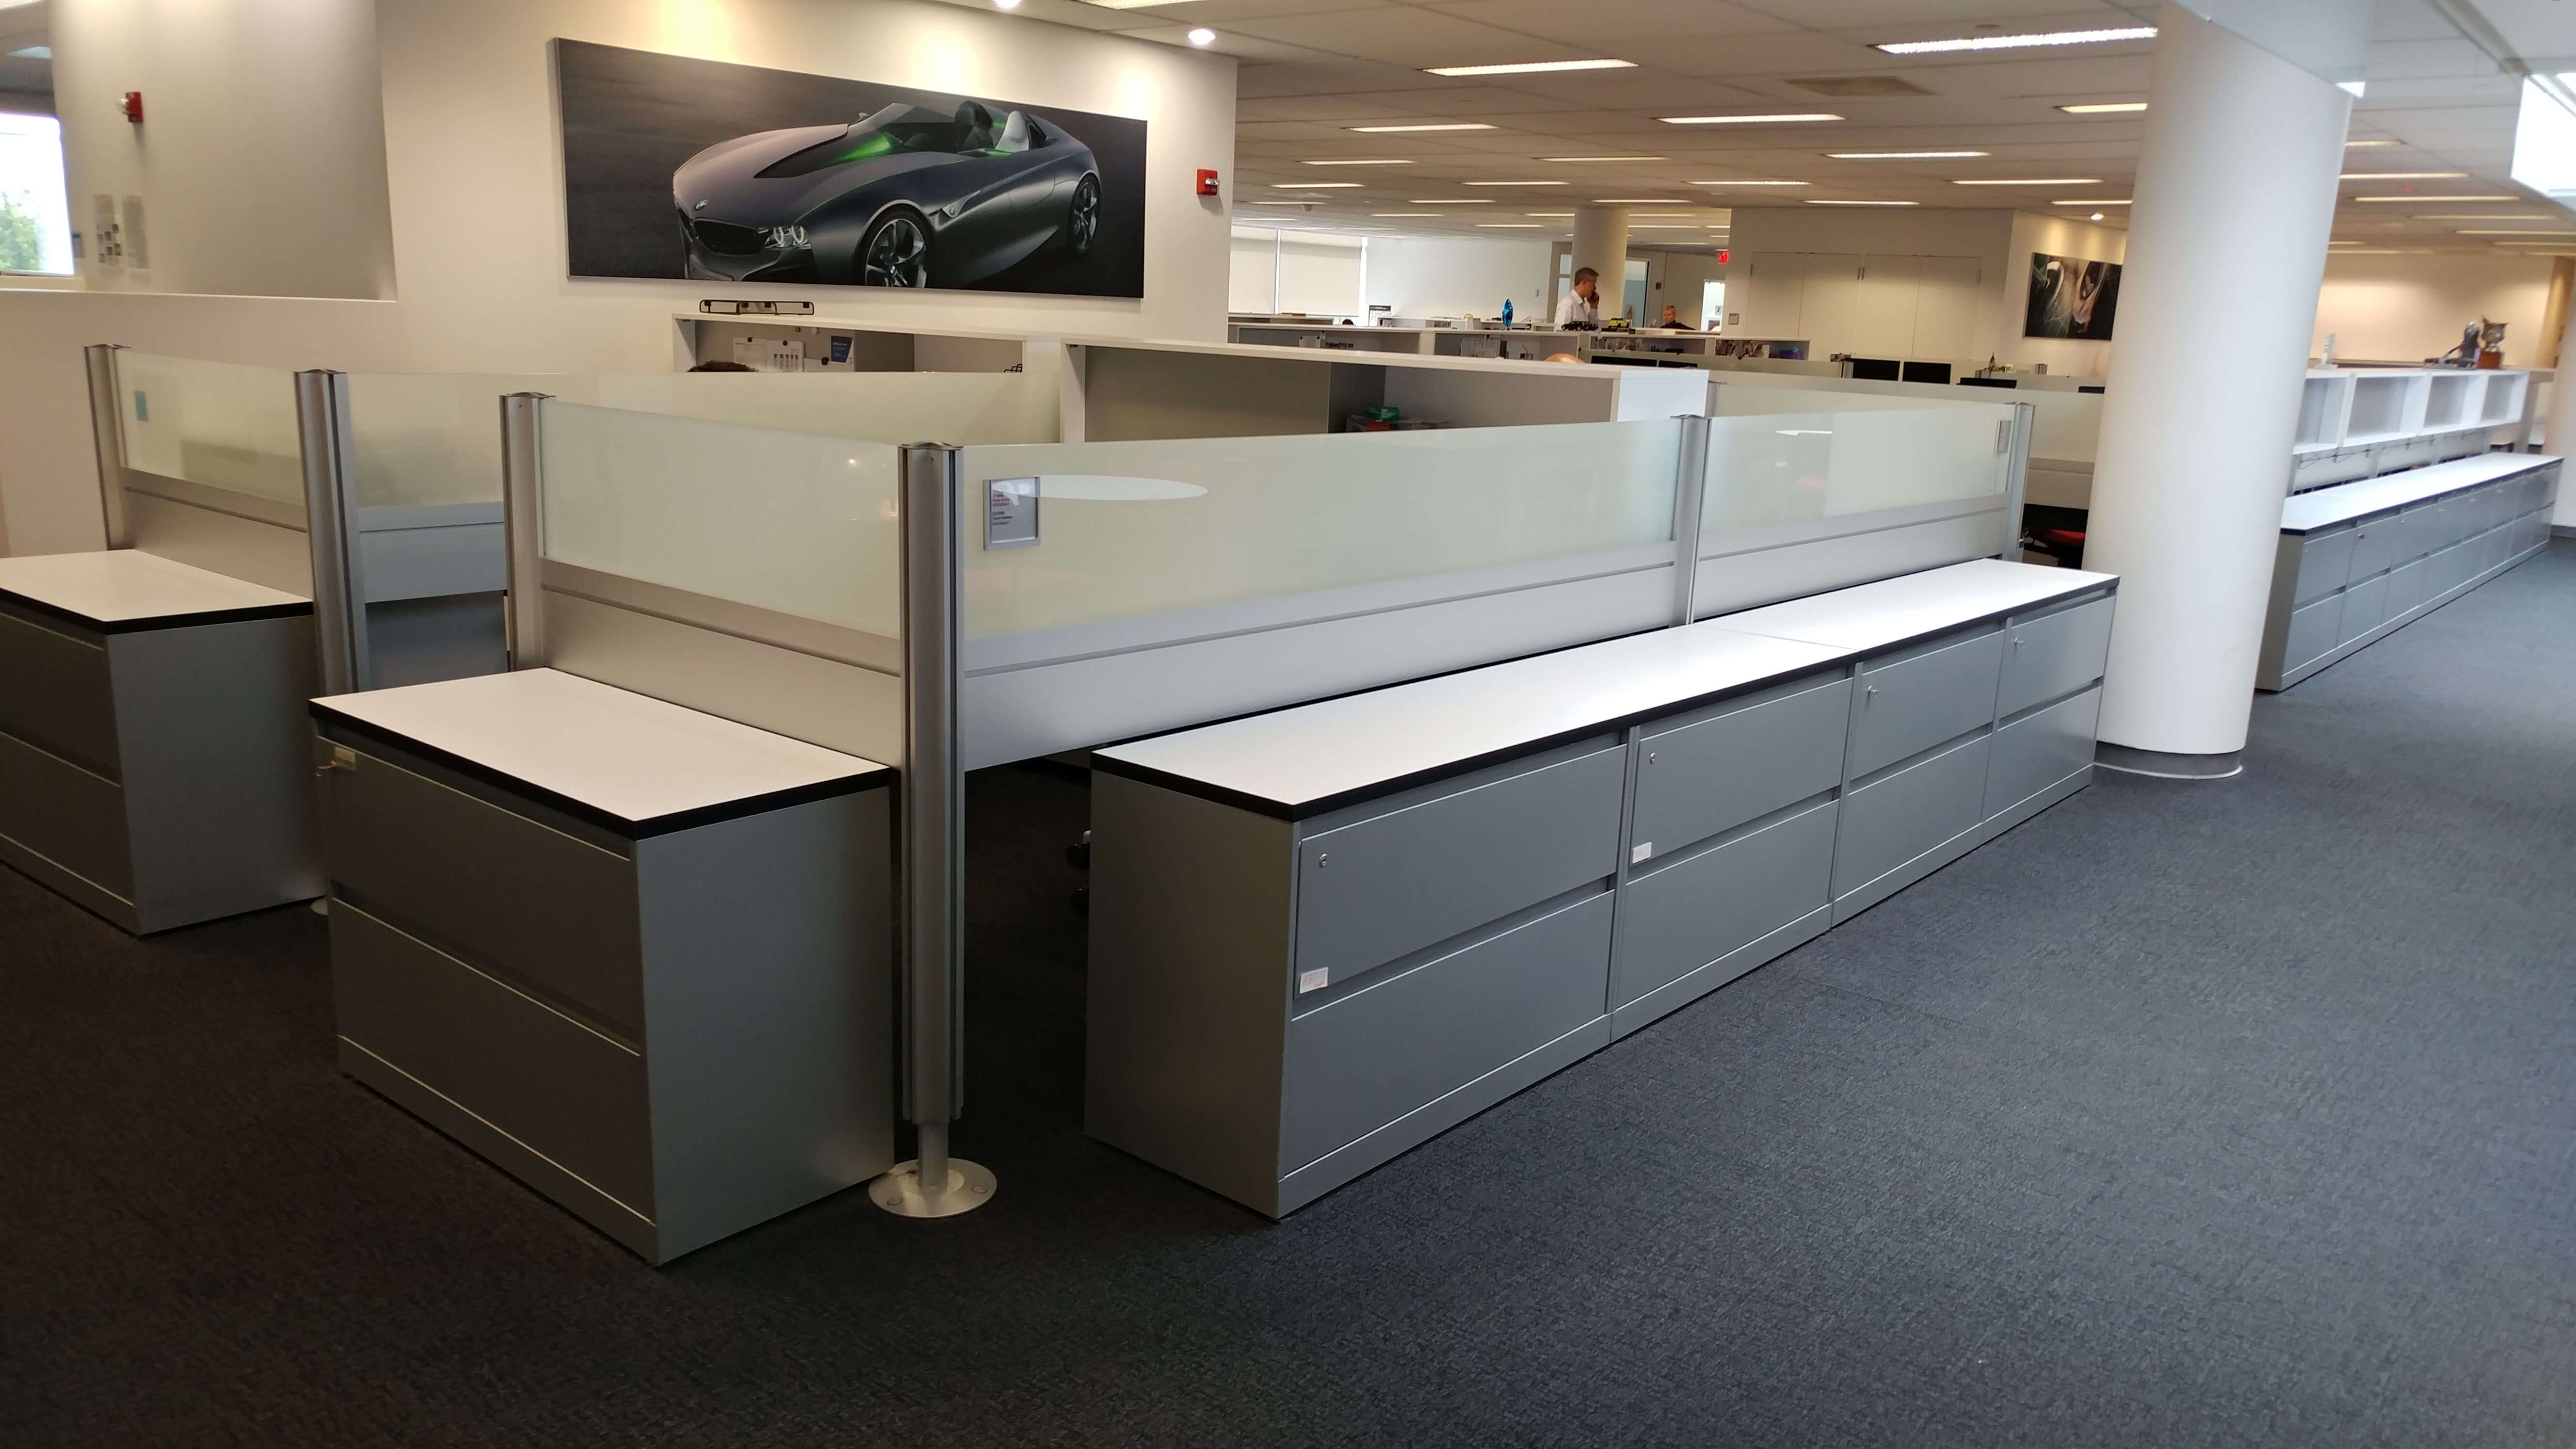 marvelous cubicles office furniture | Used Office Furniture for Sale by cubicles.com